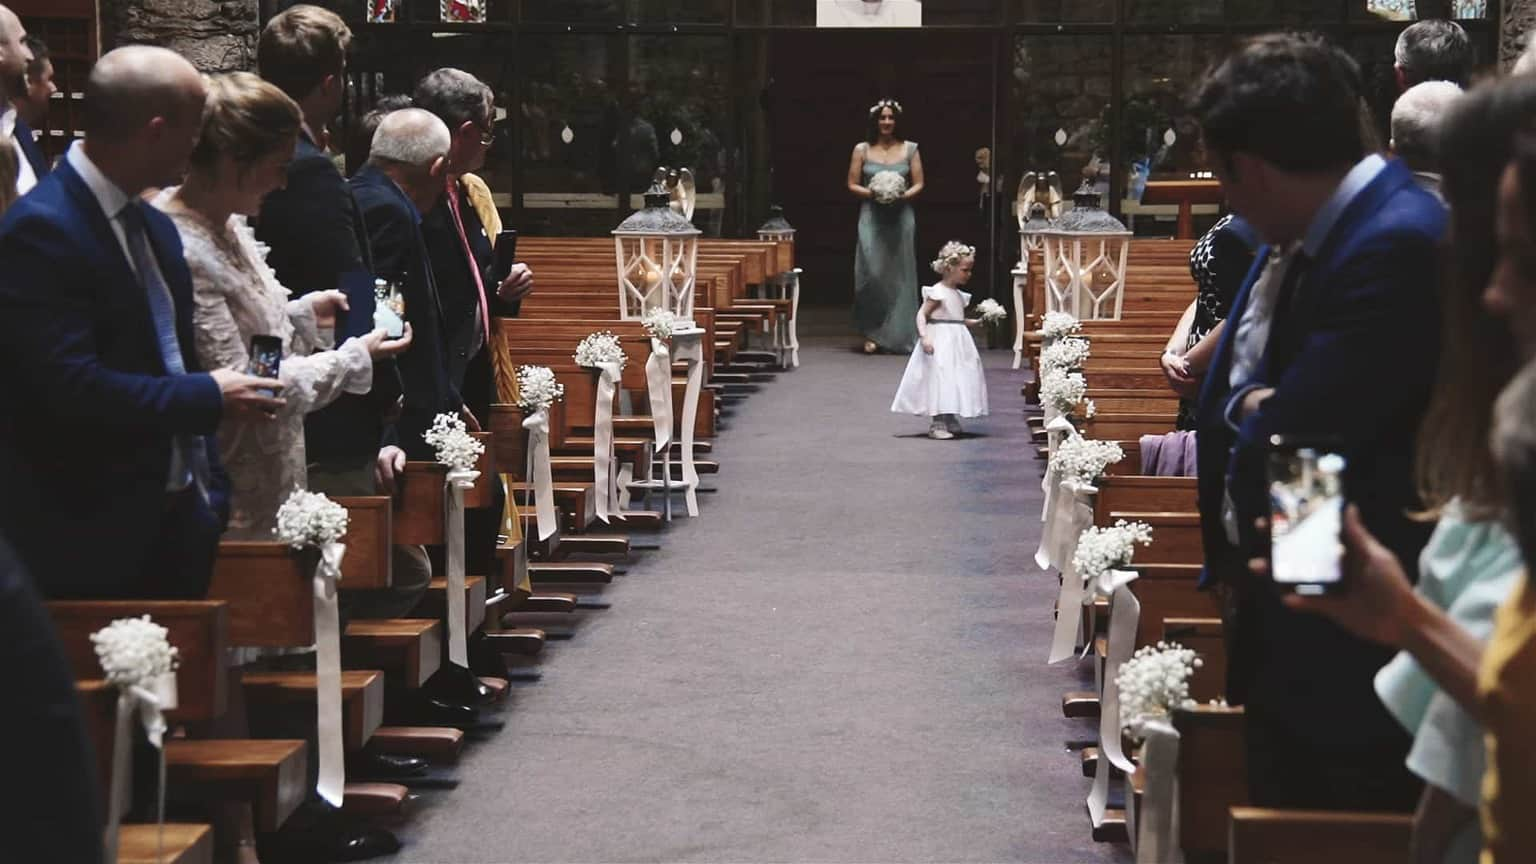 flower girl decide to live church.